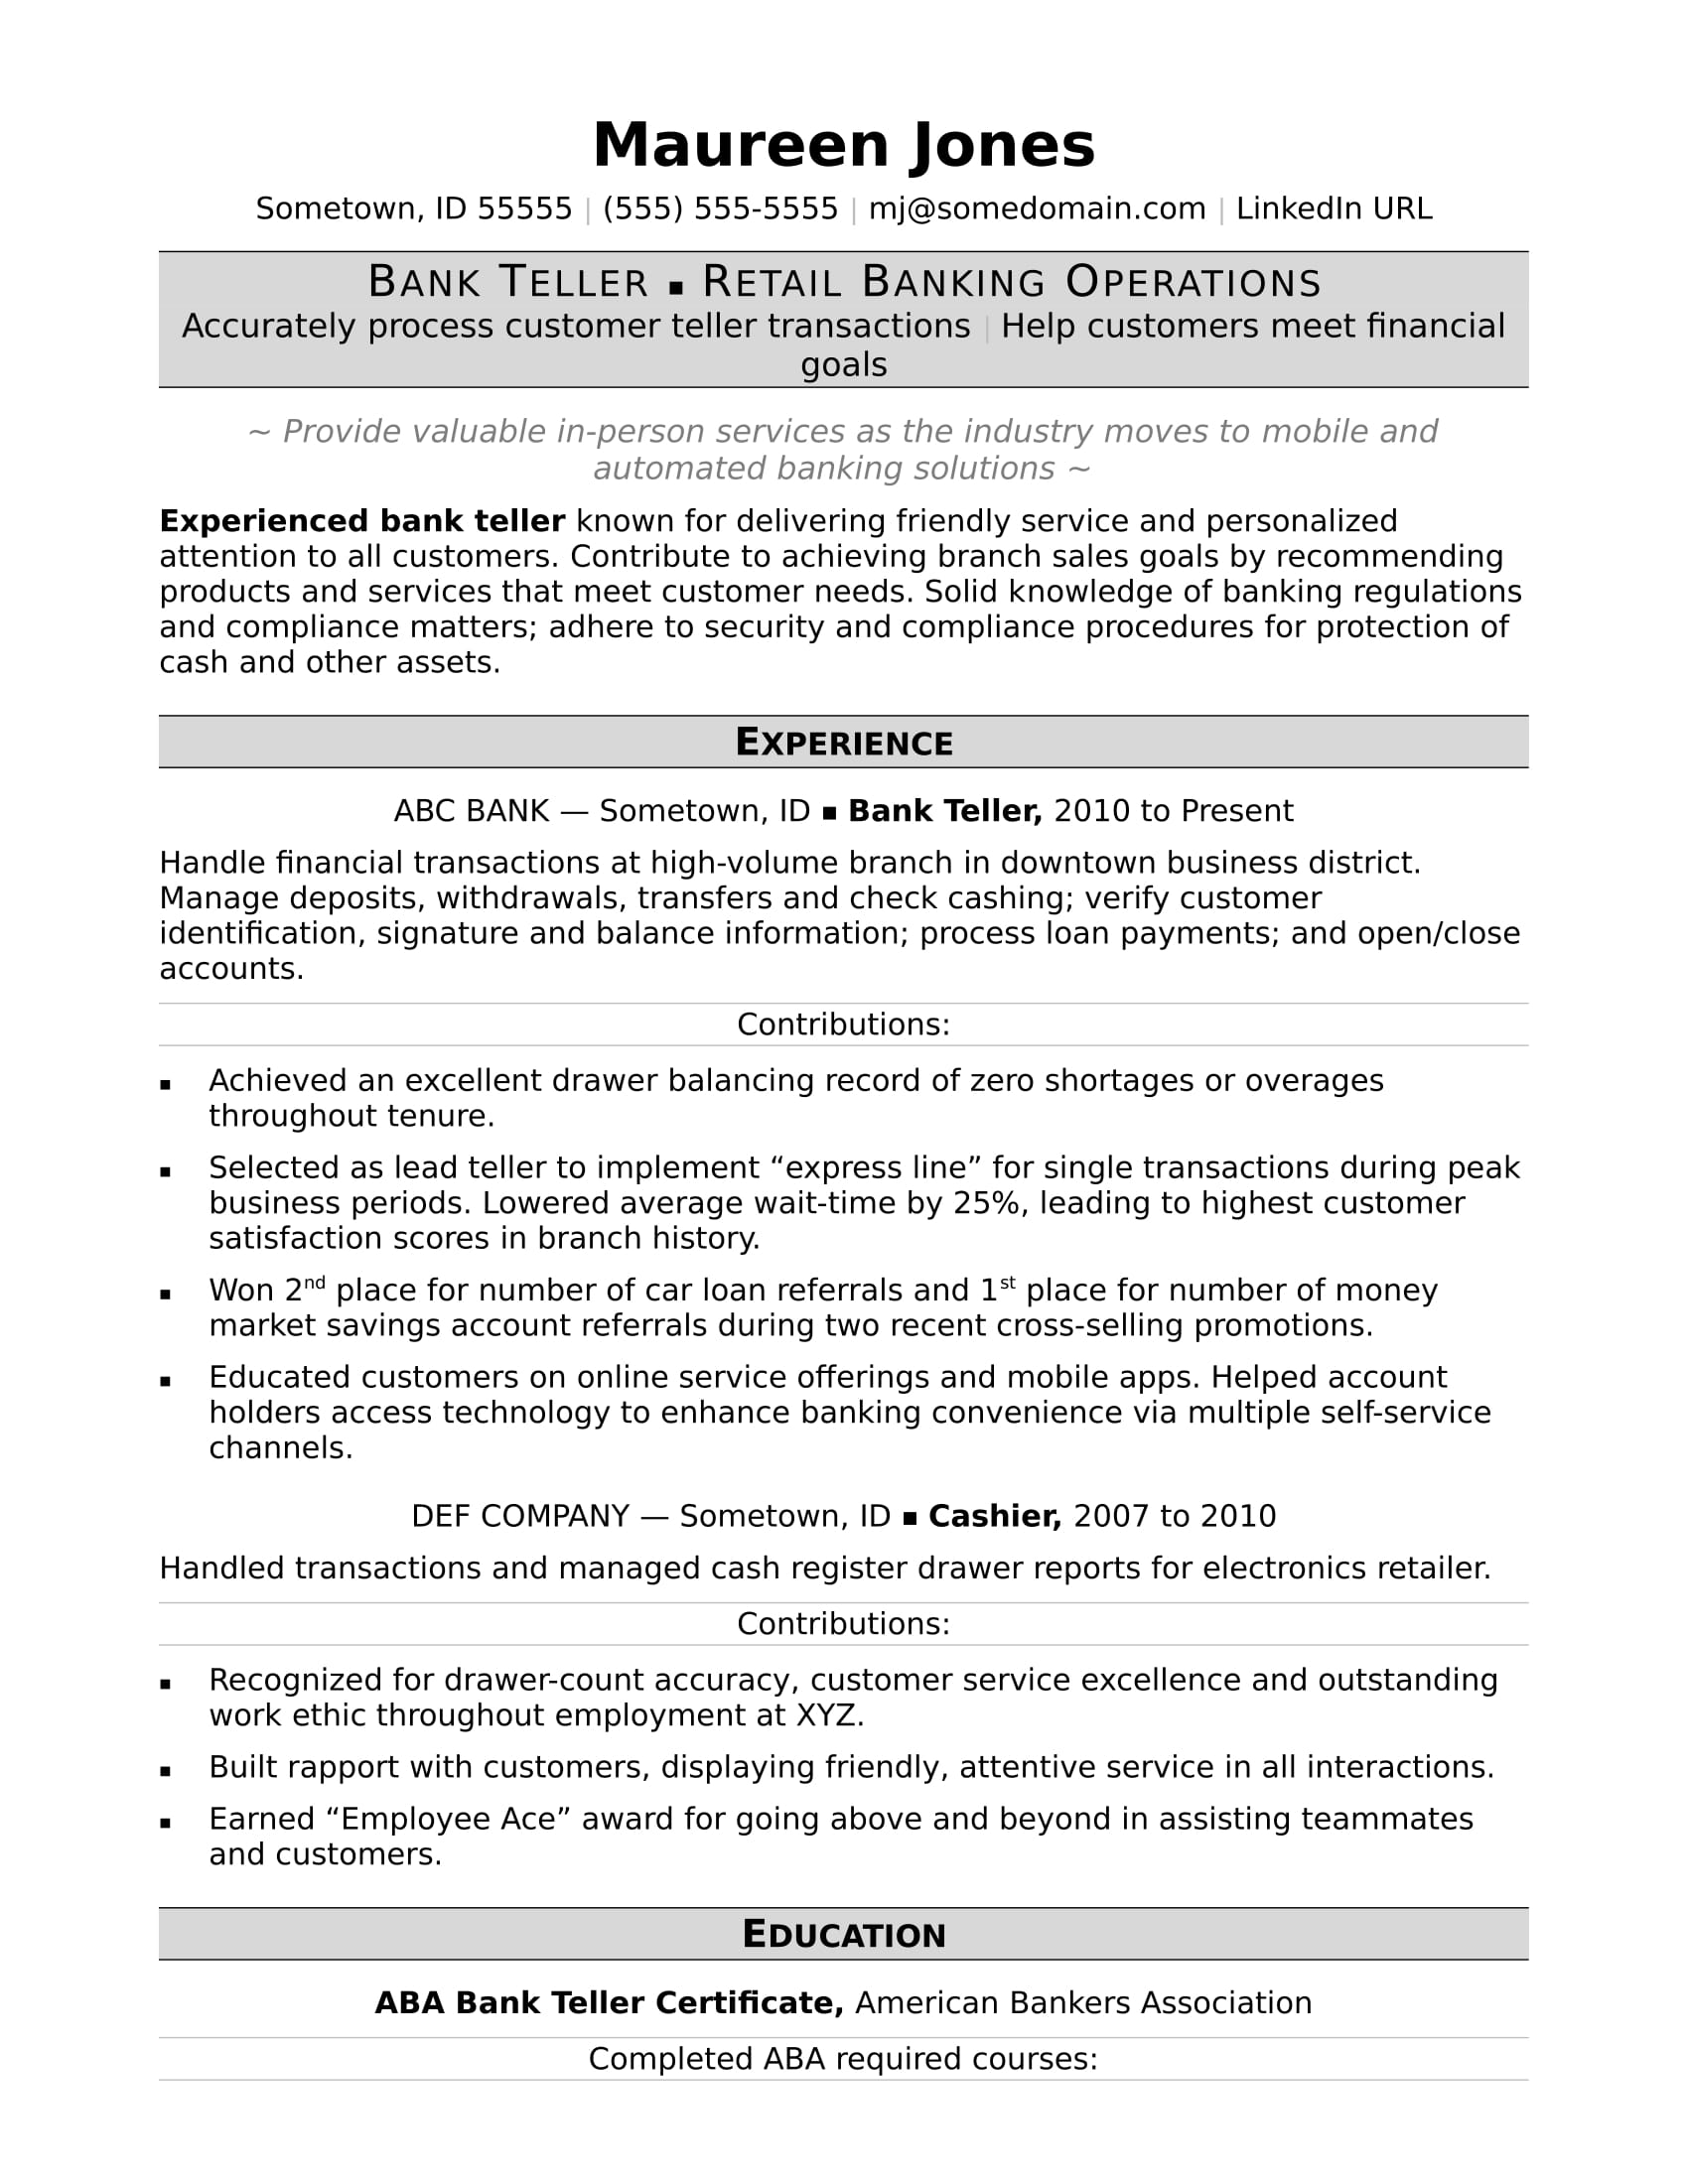 Bank teller resume sample monster bank teller resume sample yelopaper Choice Image